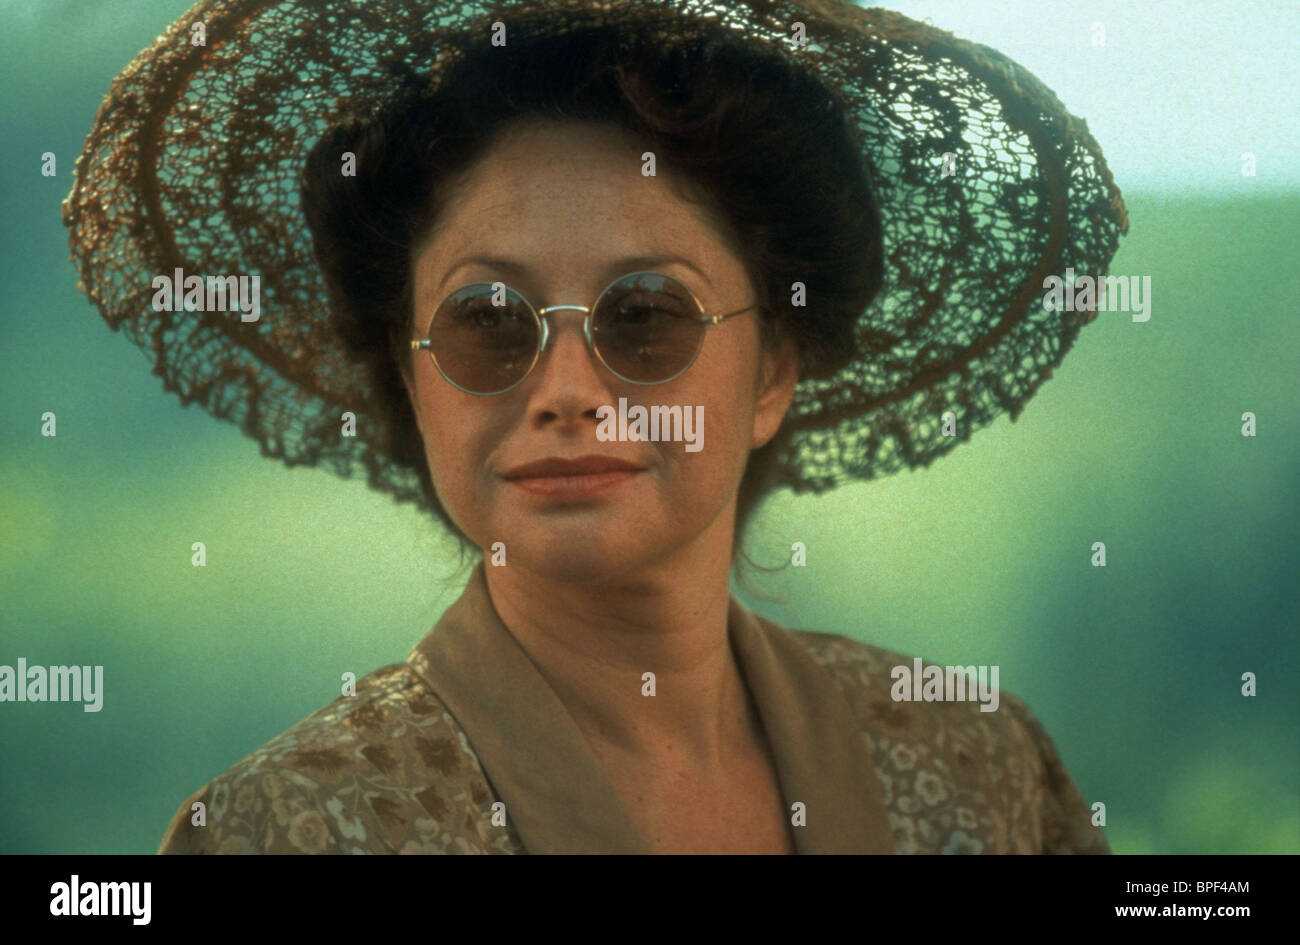 ANGELICA ARAGON A WALK IN THE CLOUDS (1995) - Stock Image